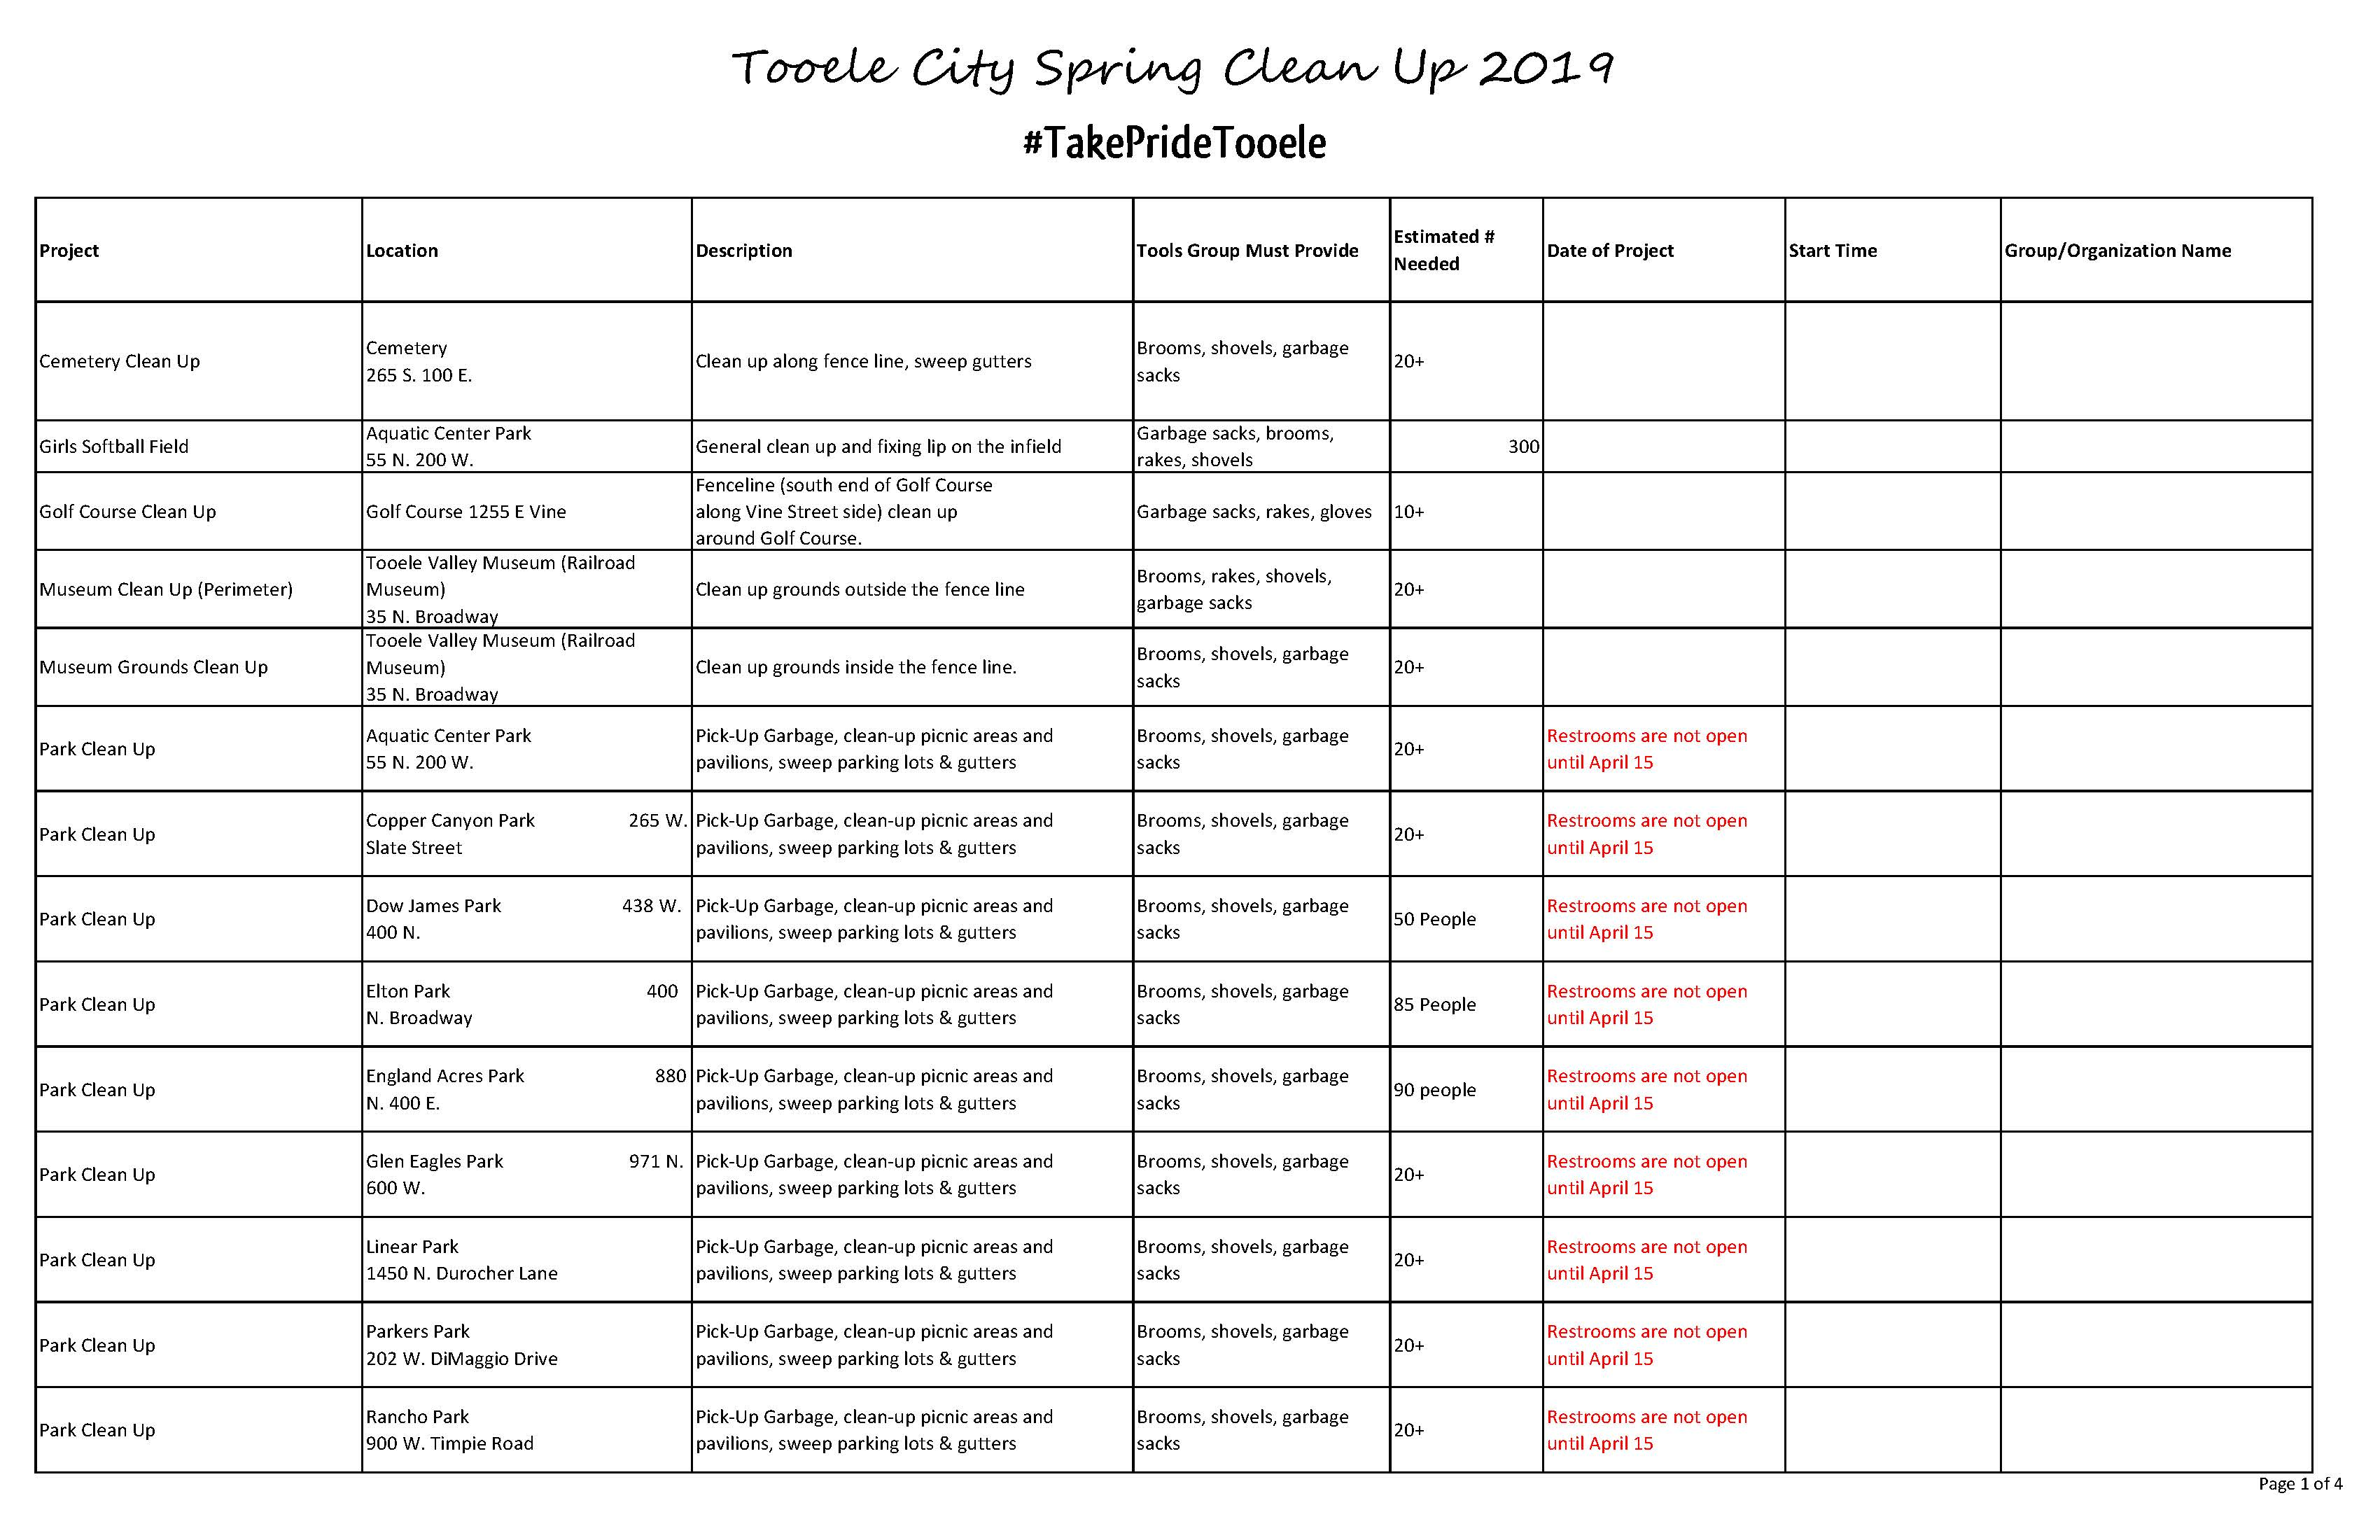 Website - List of Projects for Spring Clean Up 2019_Page_1